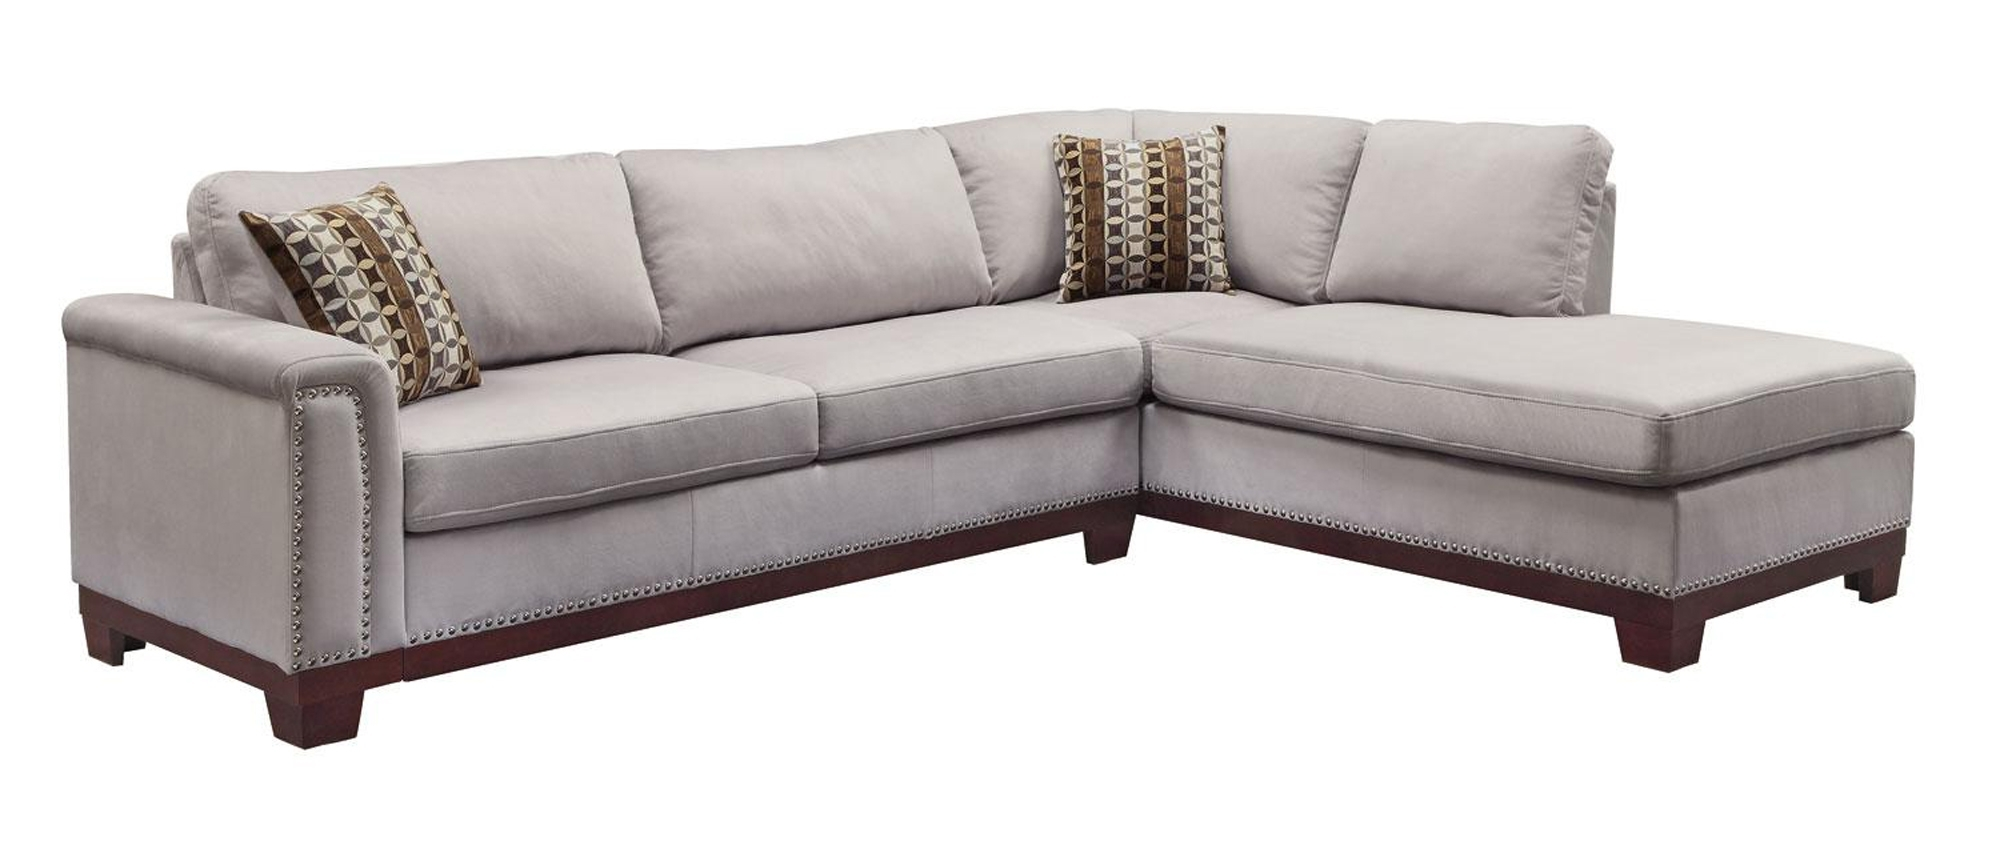 Recent Sectional Sofas With Nailheads Inside $ (View 2 of 15)